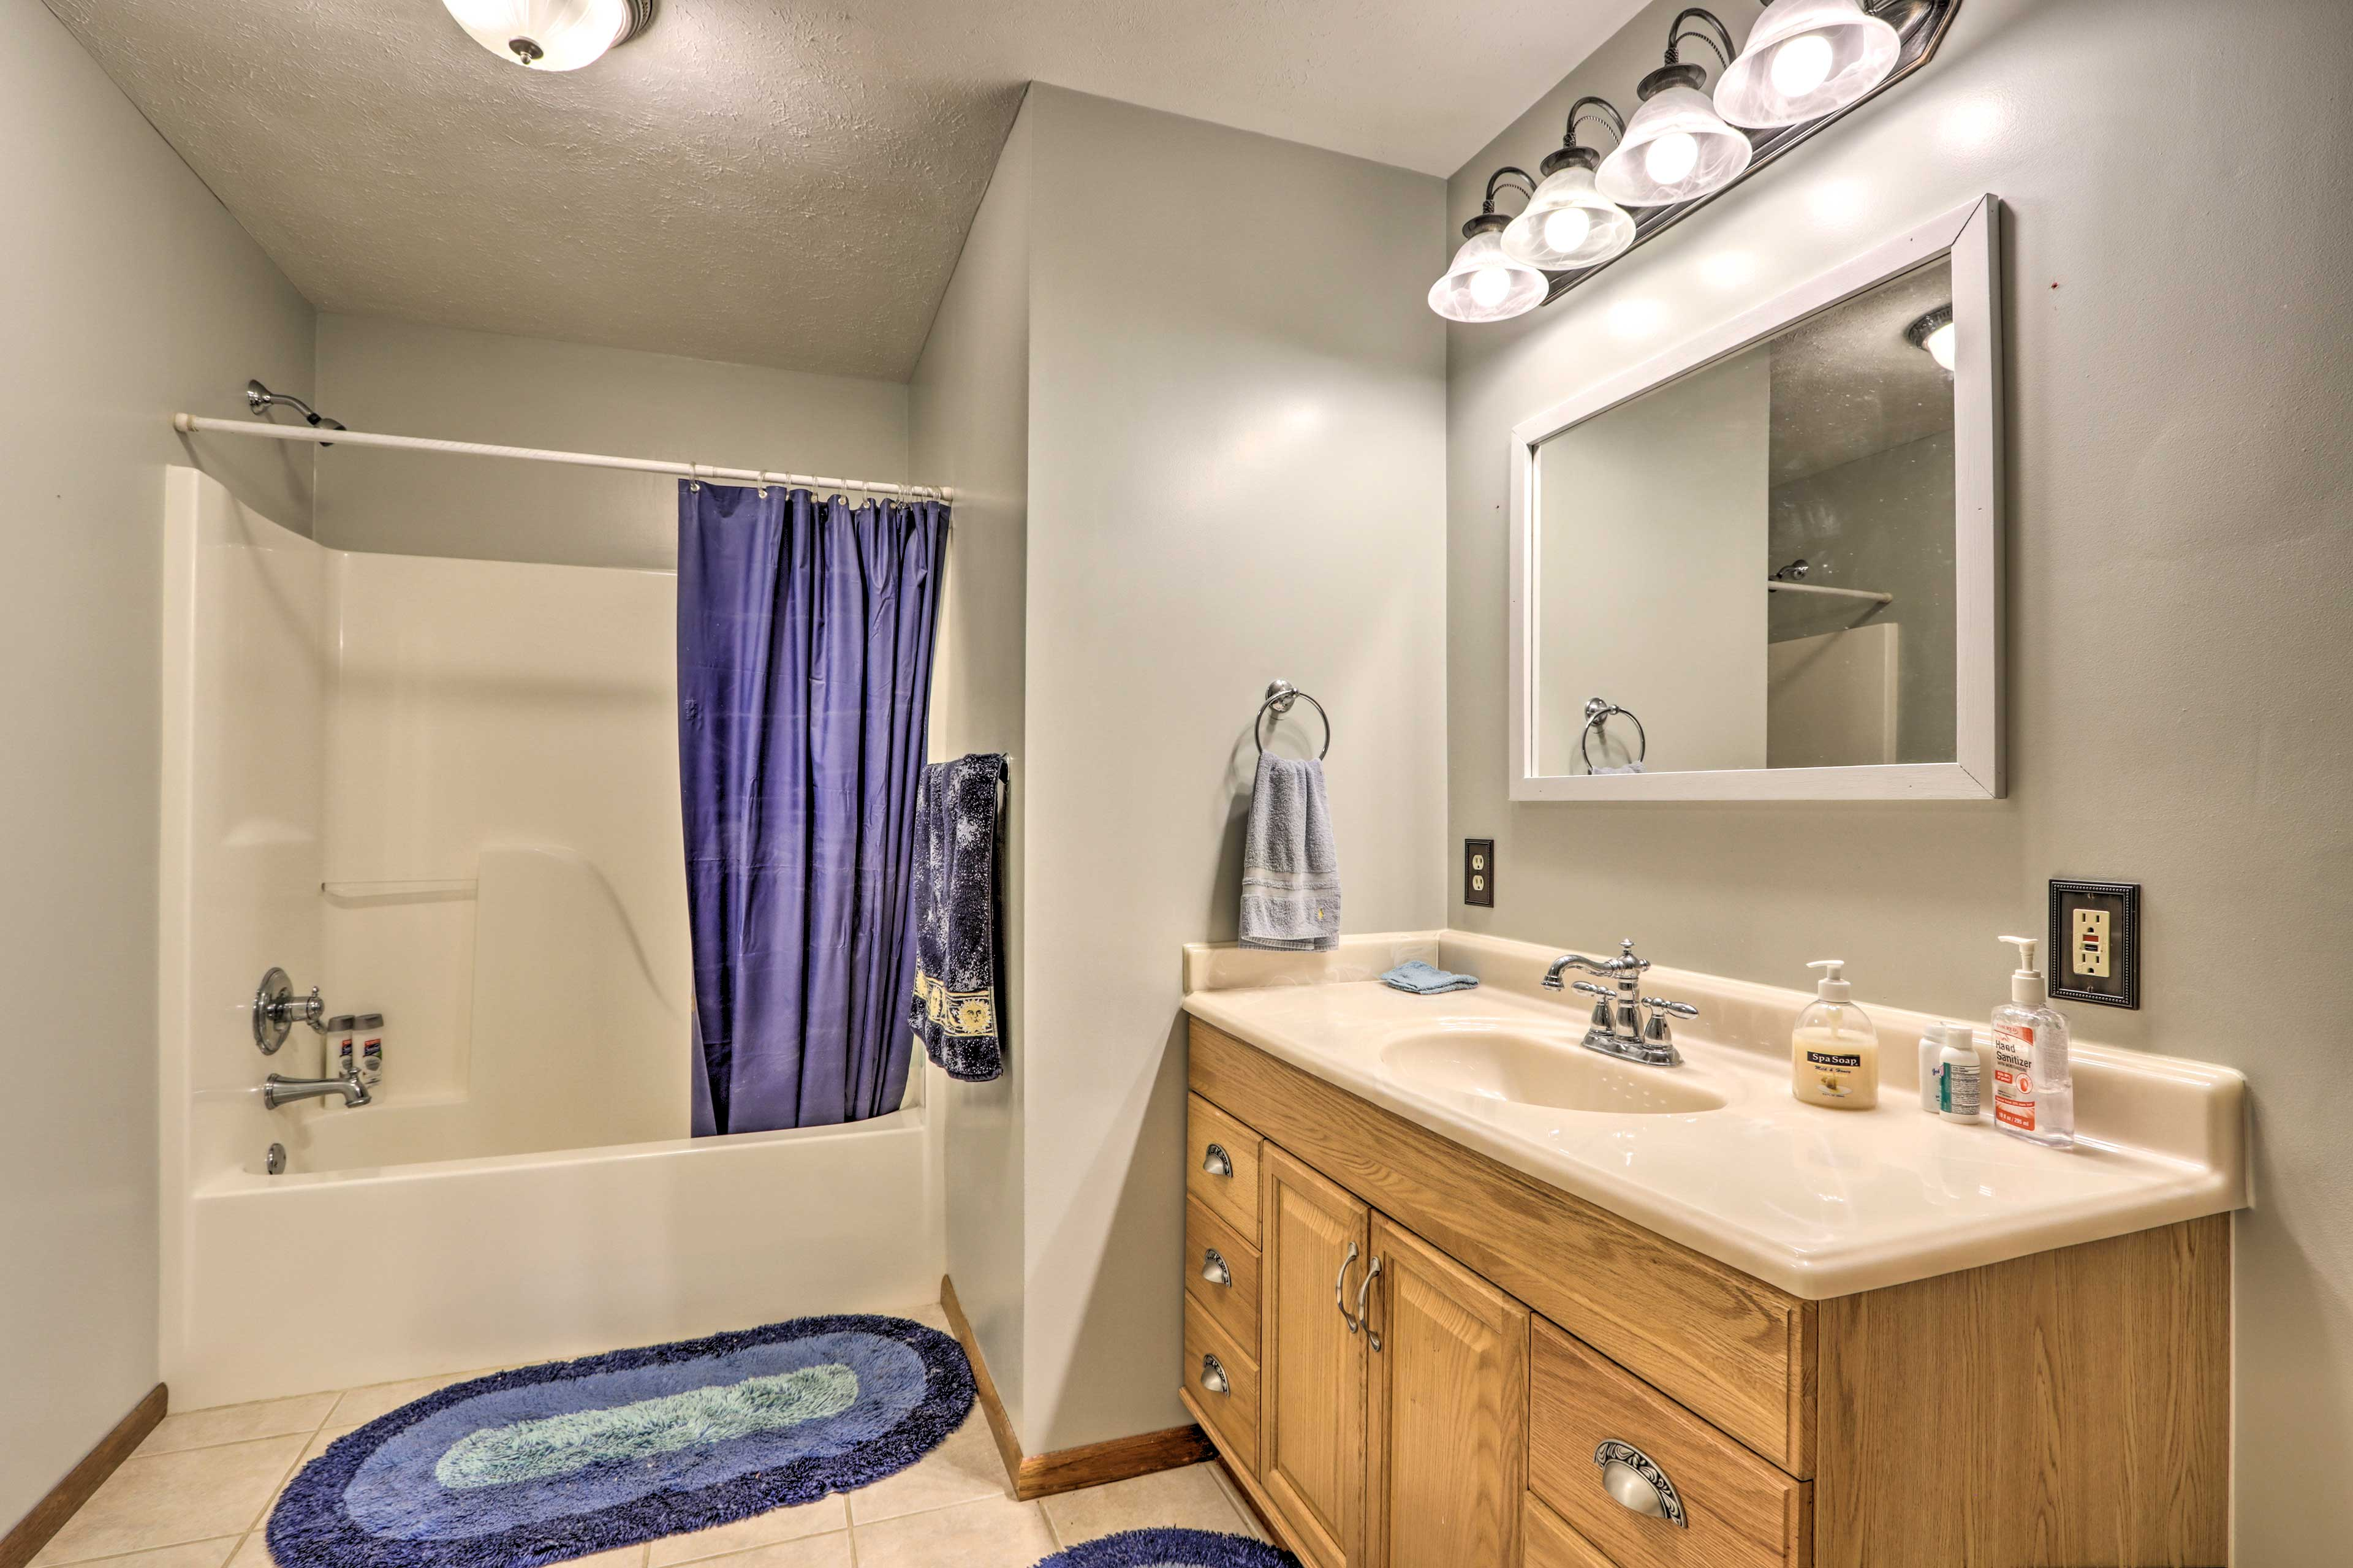 This bathroom is equipped with a shower/tub combo.